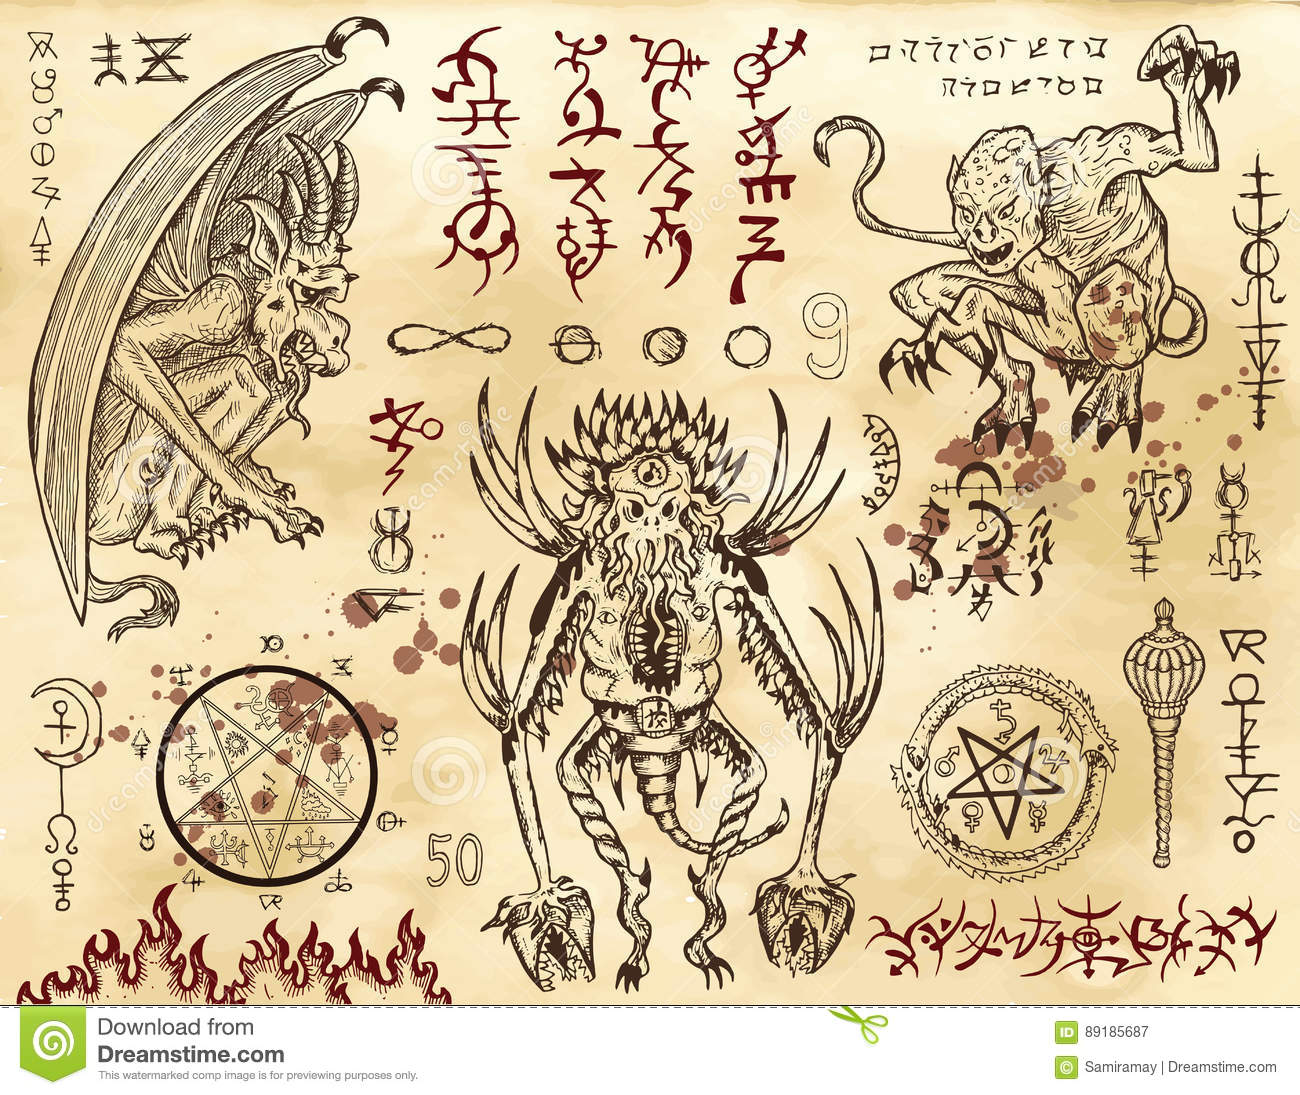 Demon collection with mystic and occult symbols stock vector demon collection with mystic and occult symbols biocorpaavc